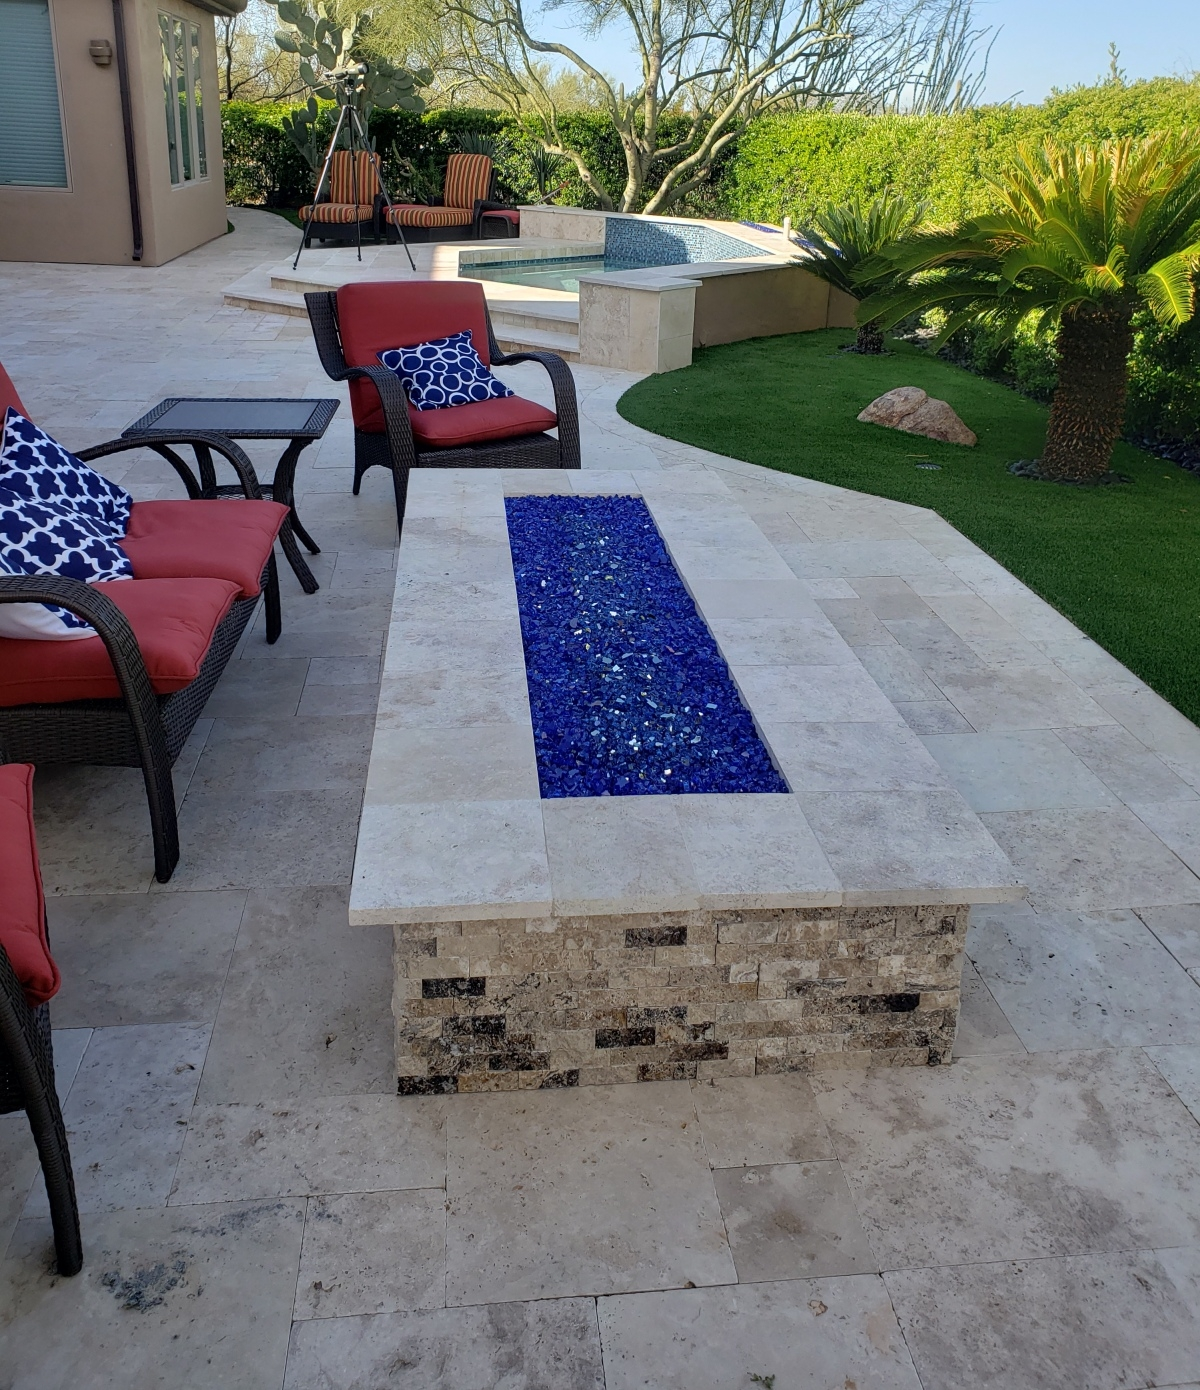 Cobalt Fire Glass adds lots of pizzazz to this travertine fire pit and spa surround. The spa has it's own channel fire pits too.